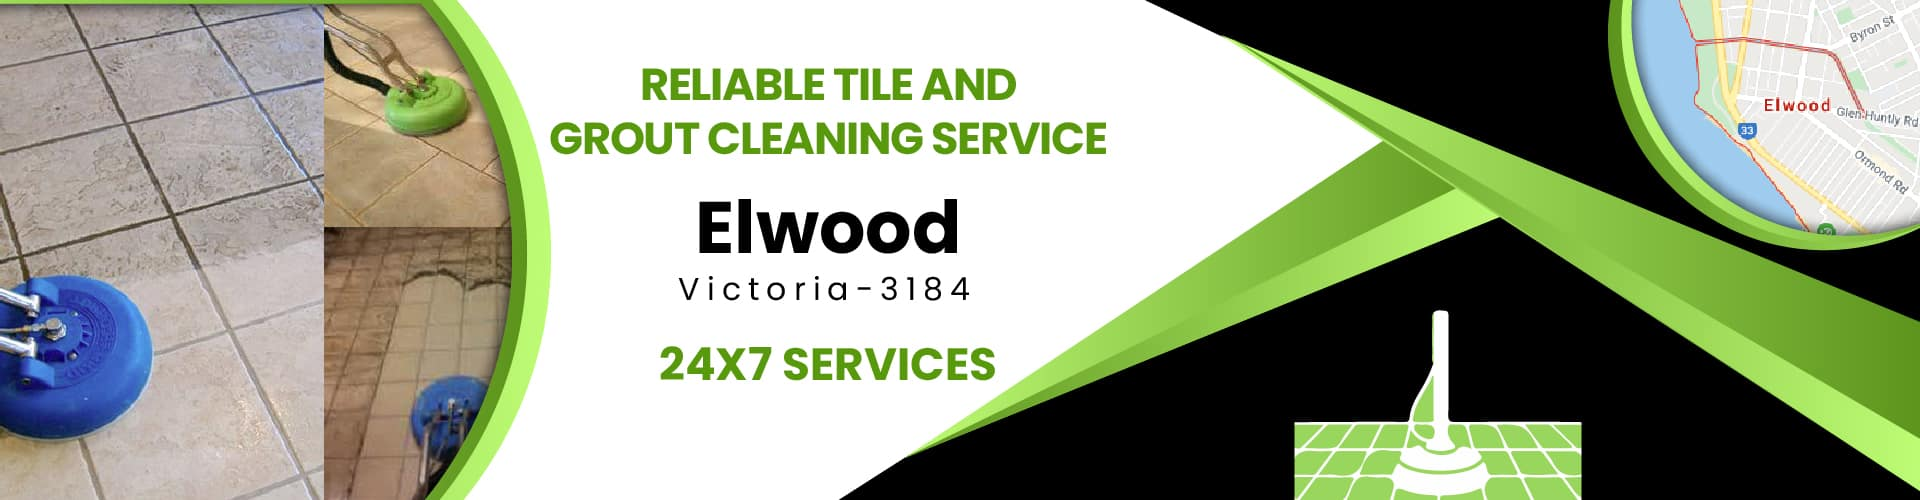 Tile and Grout Cleaning Elwood